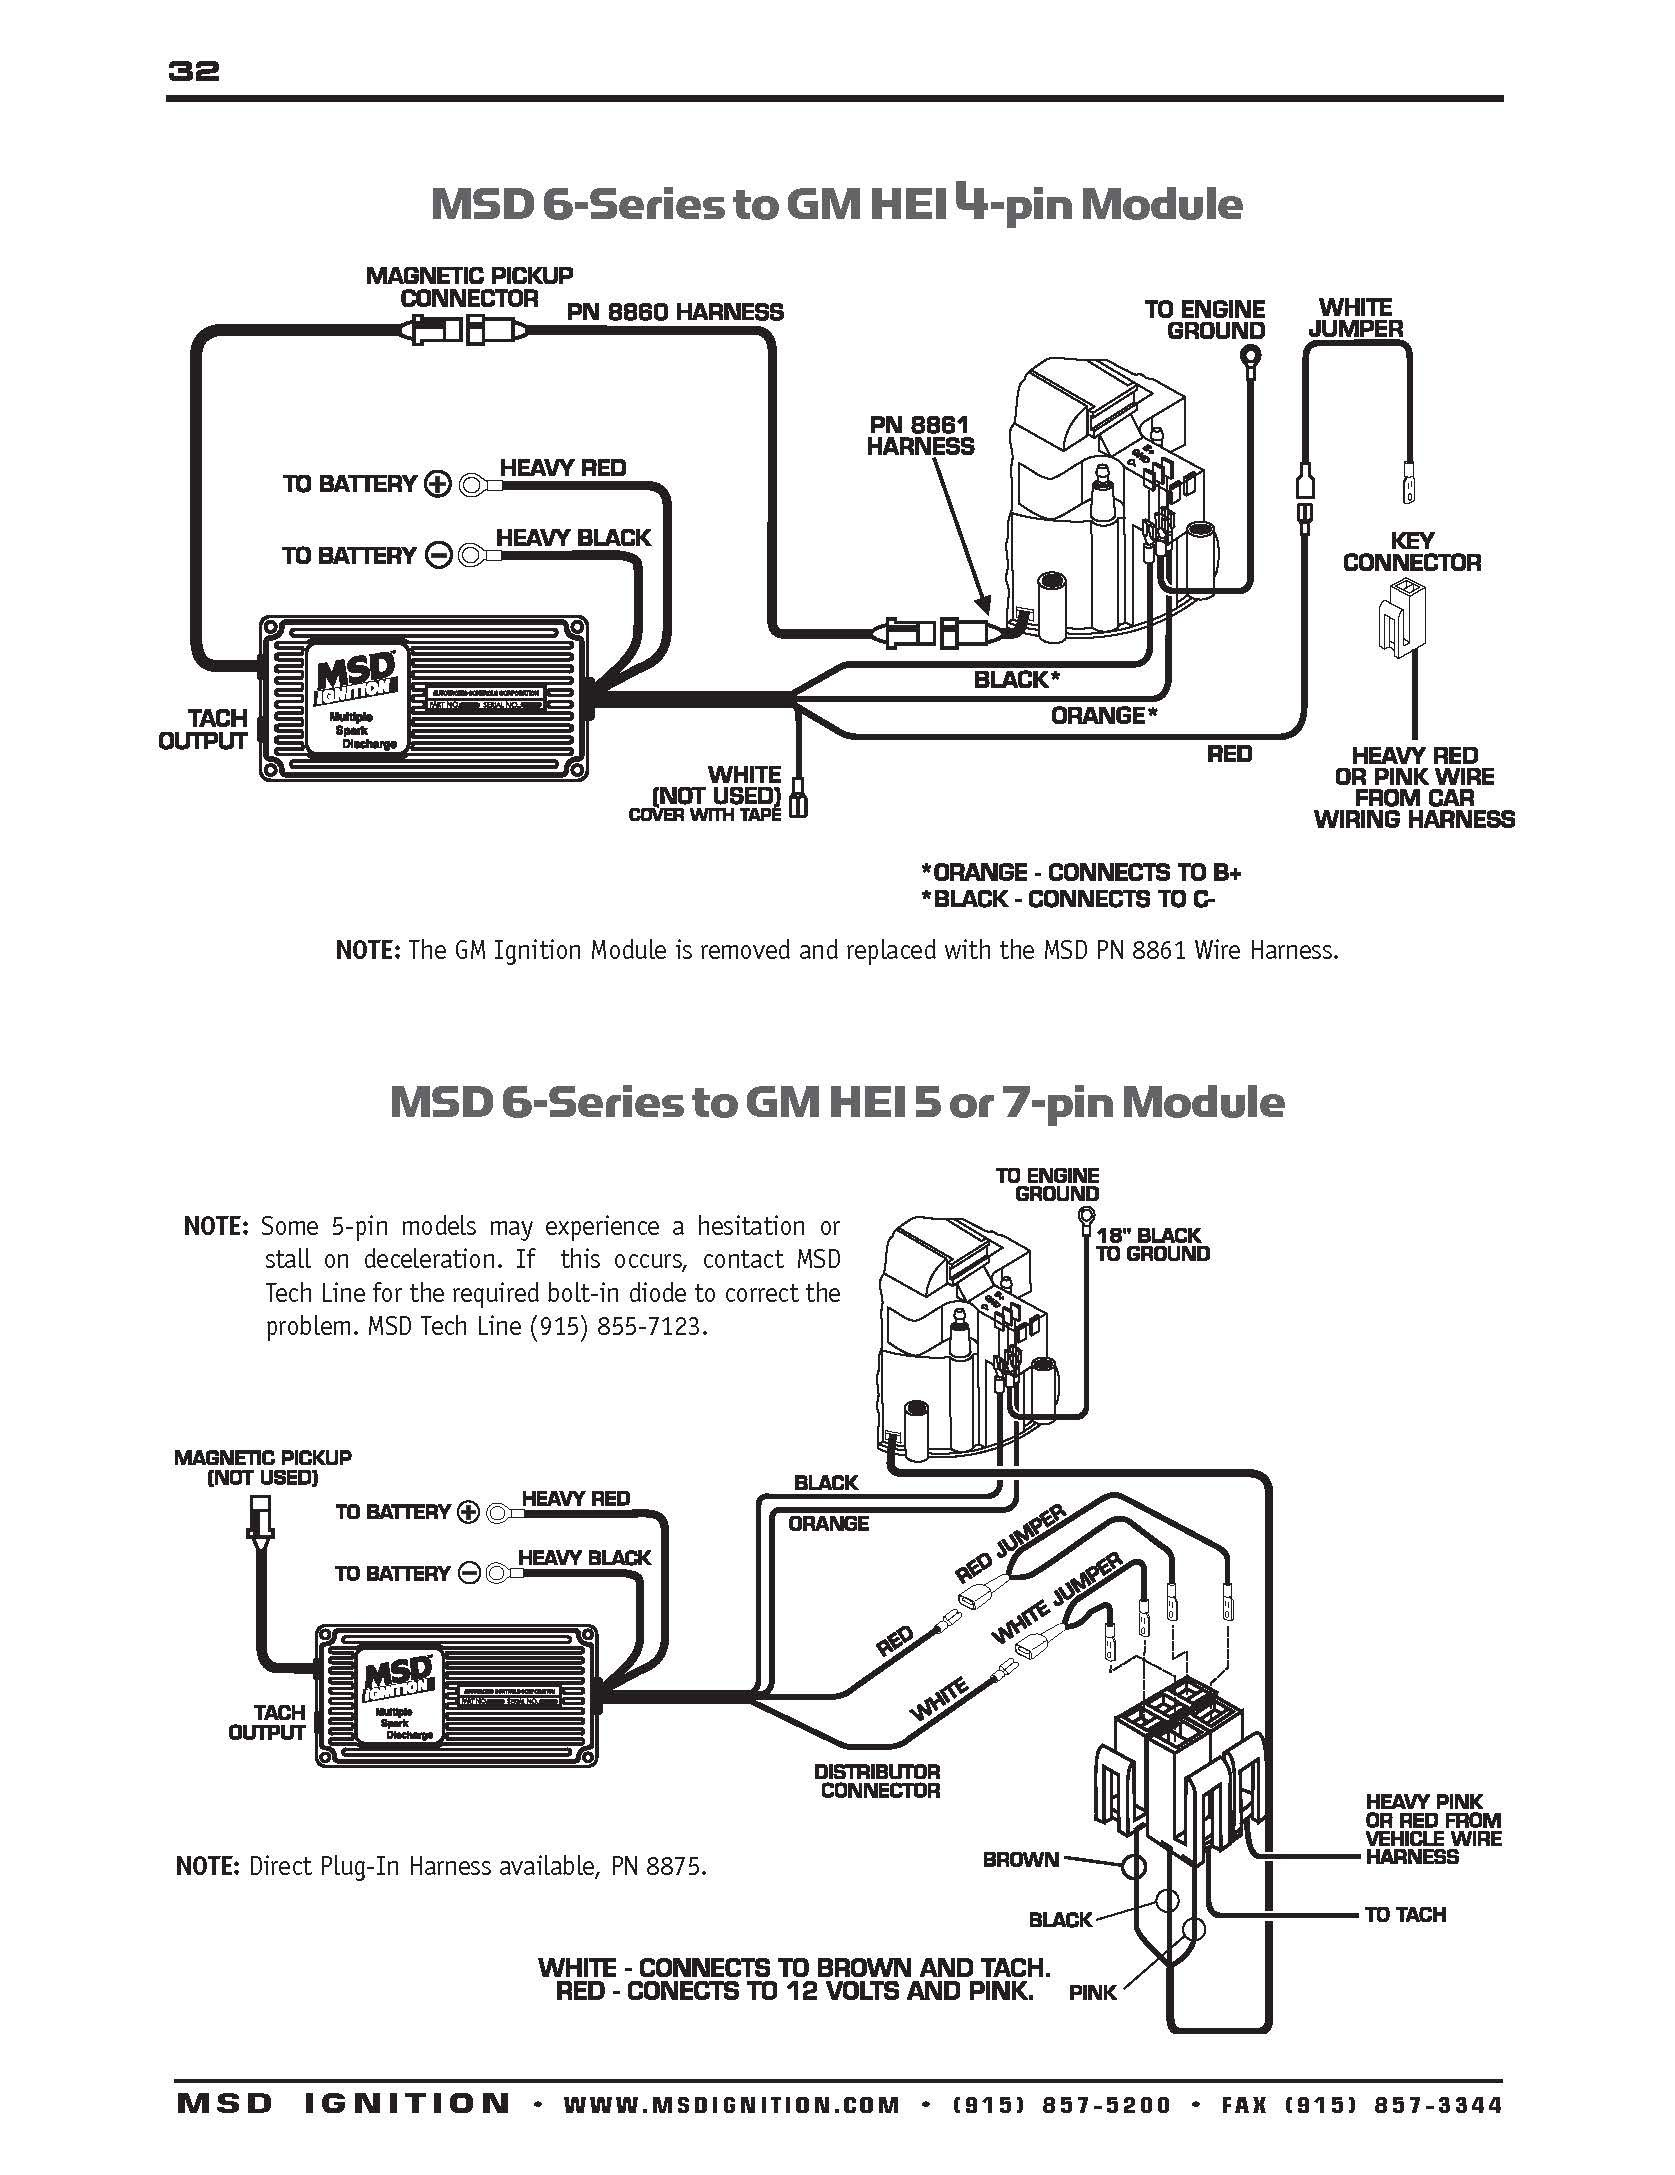 small engine ignition switch wiring diagram pioneer avh 288bt qual formato de video msd diagrams 1966 chevelle pinterest